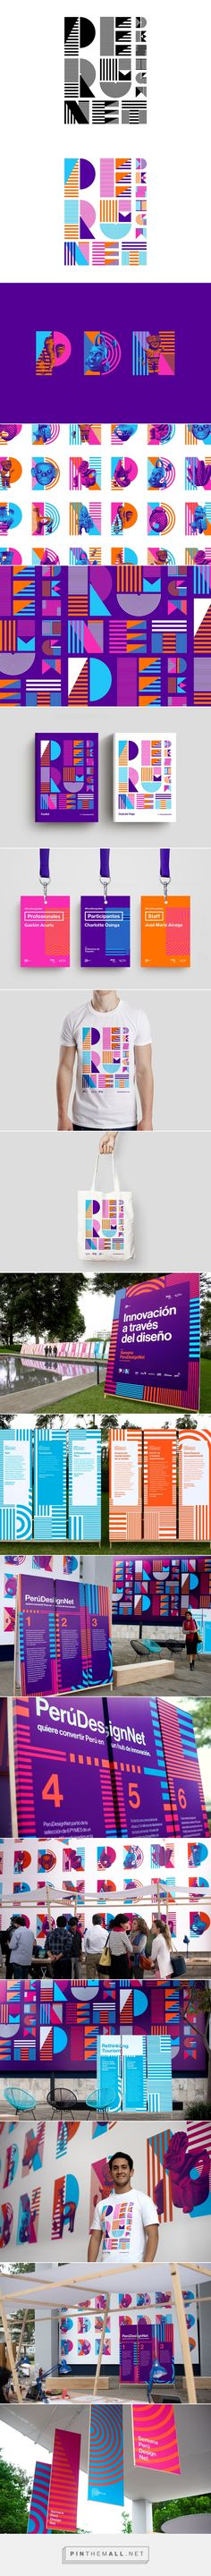 Peru Design Net on Behance